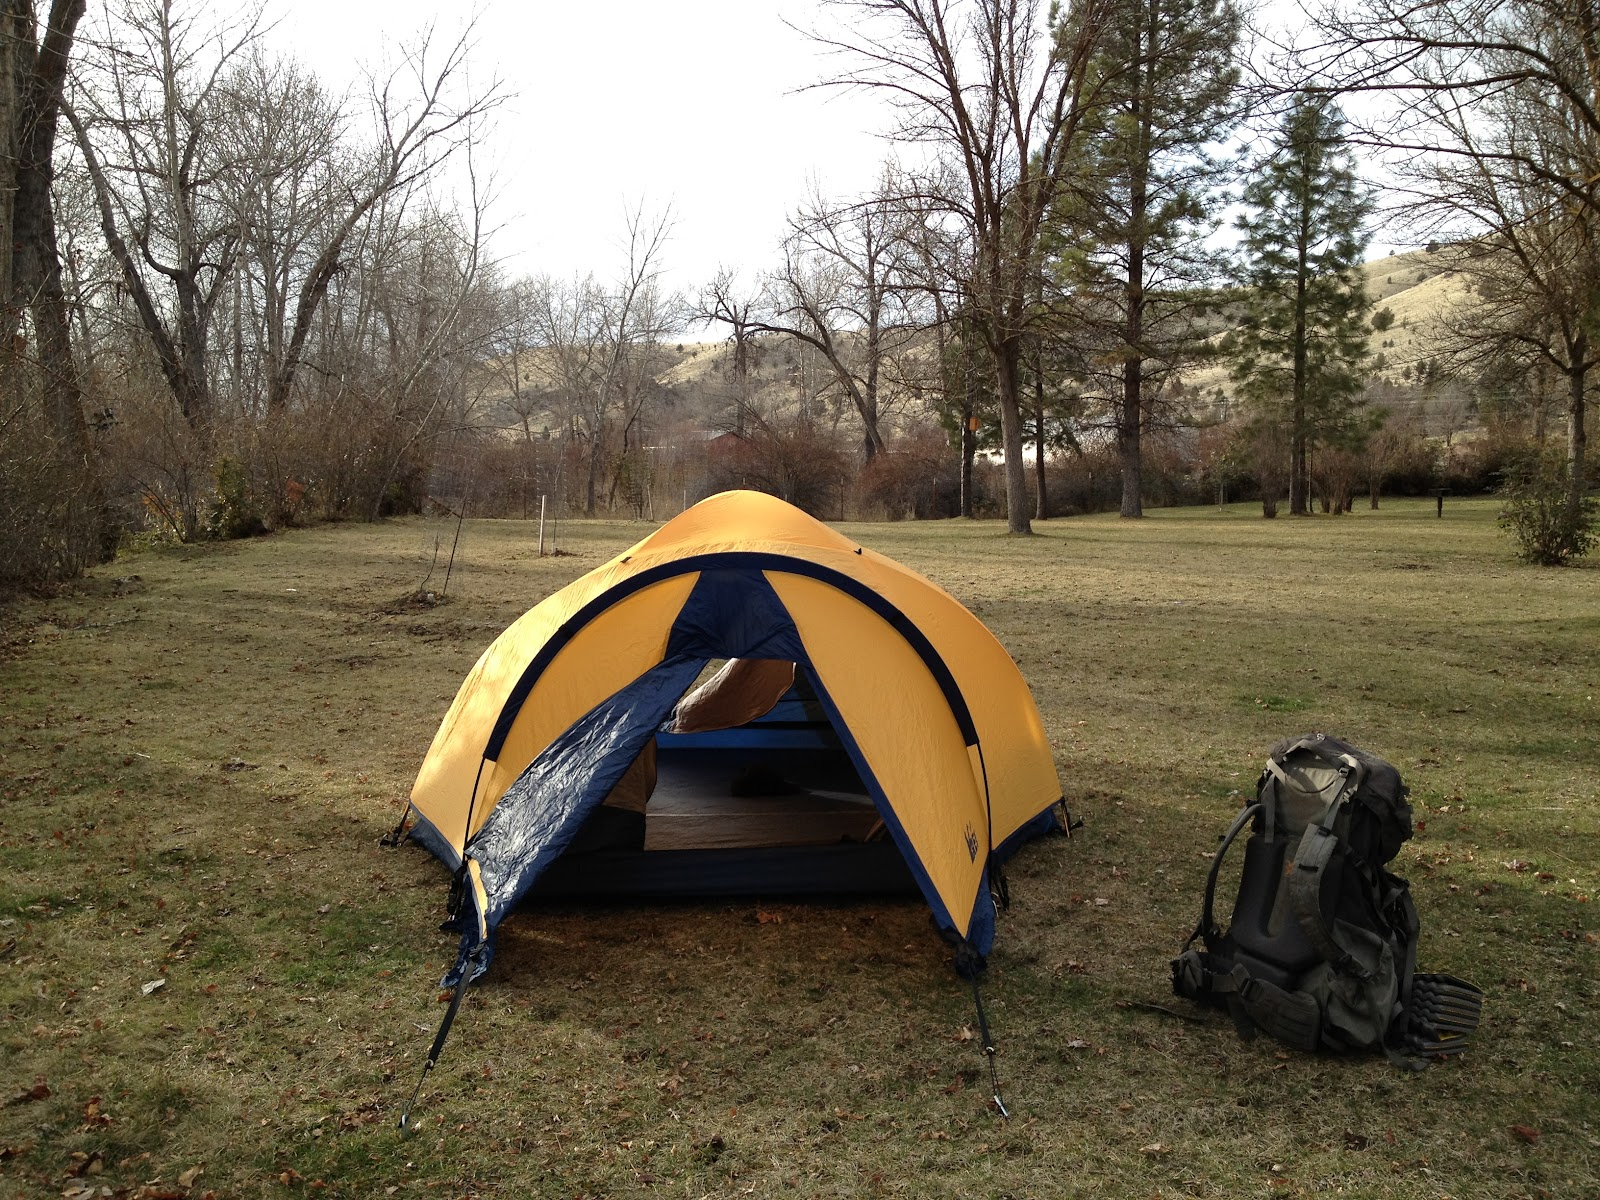 Tent Camping Near John Day Fossil Beds